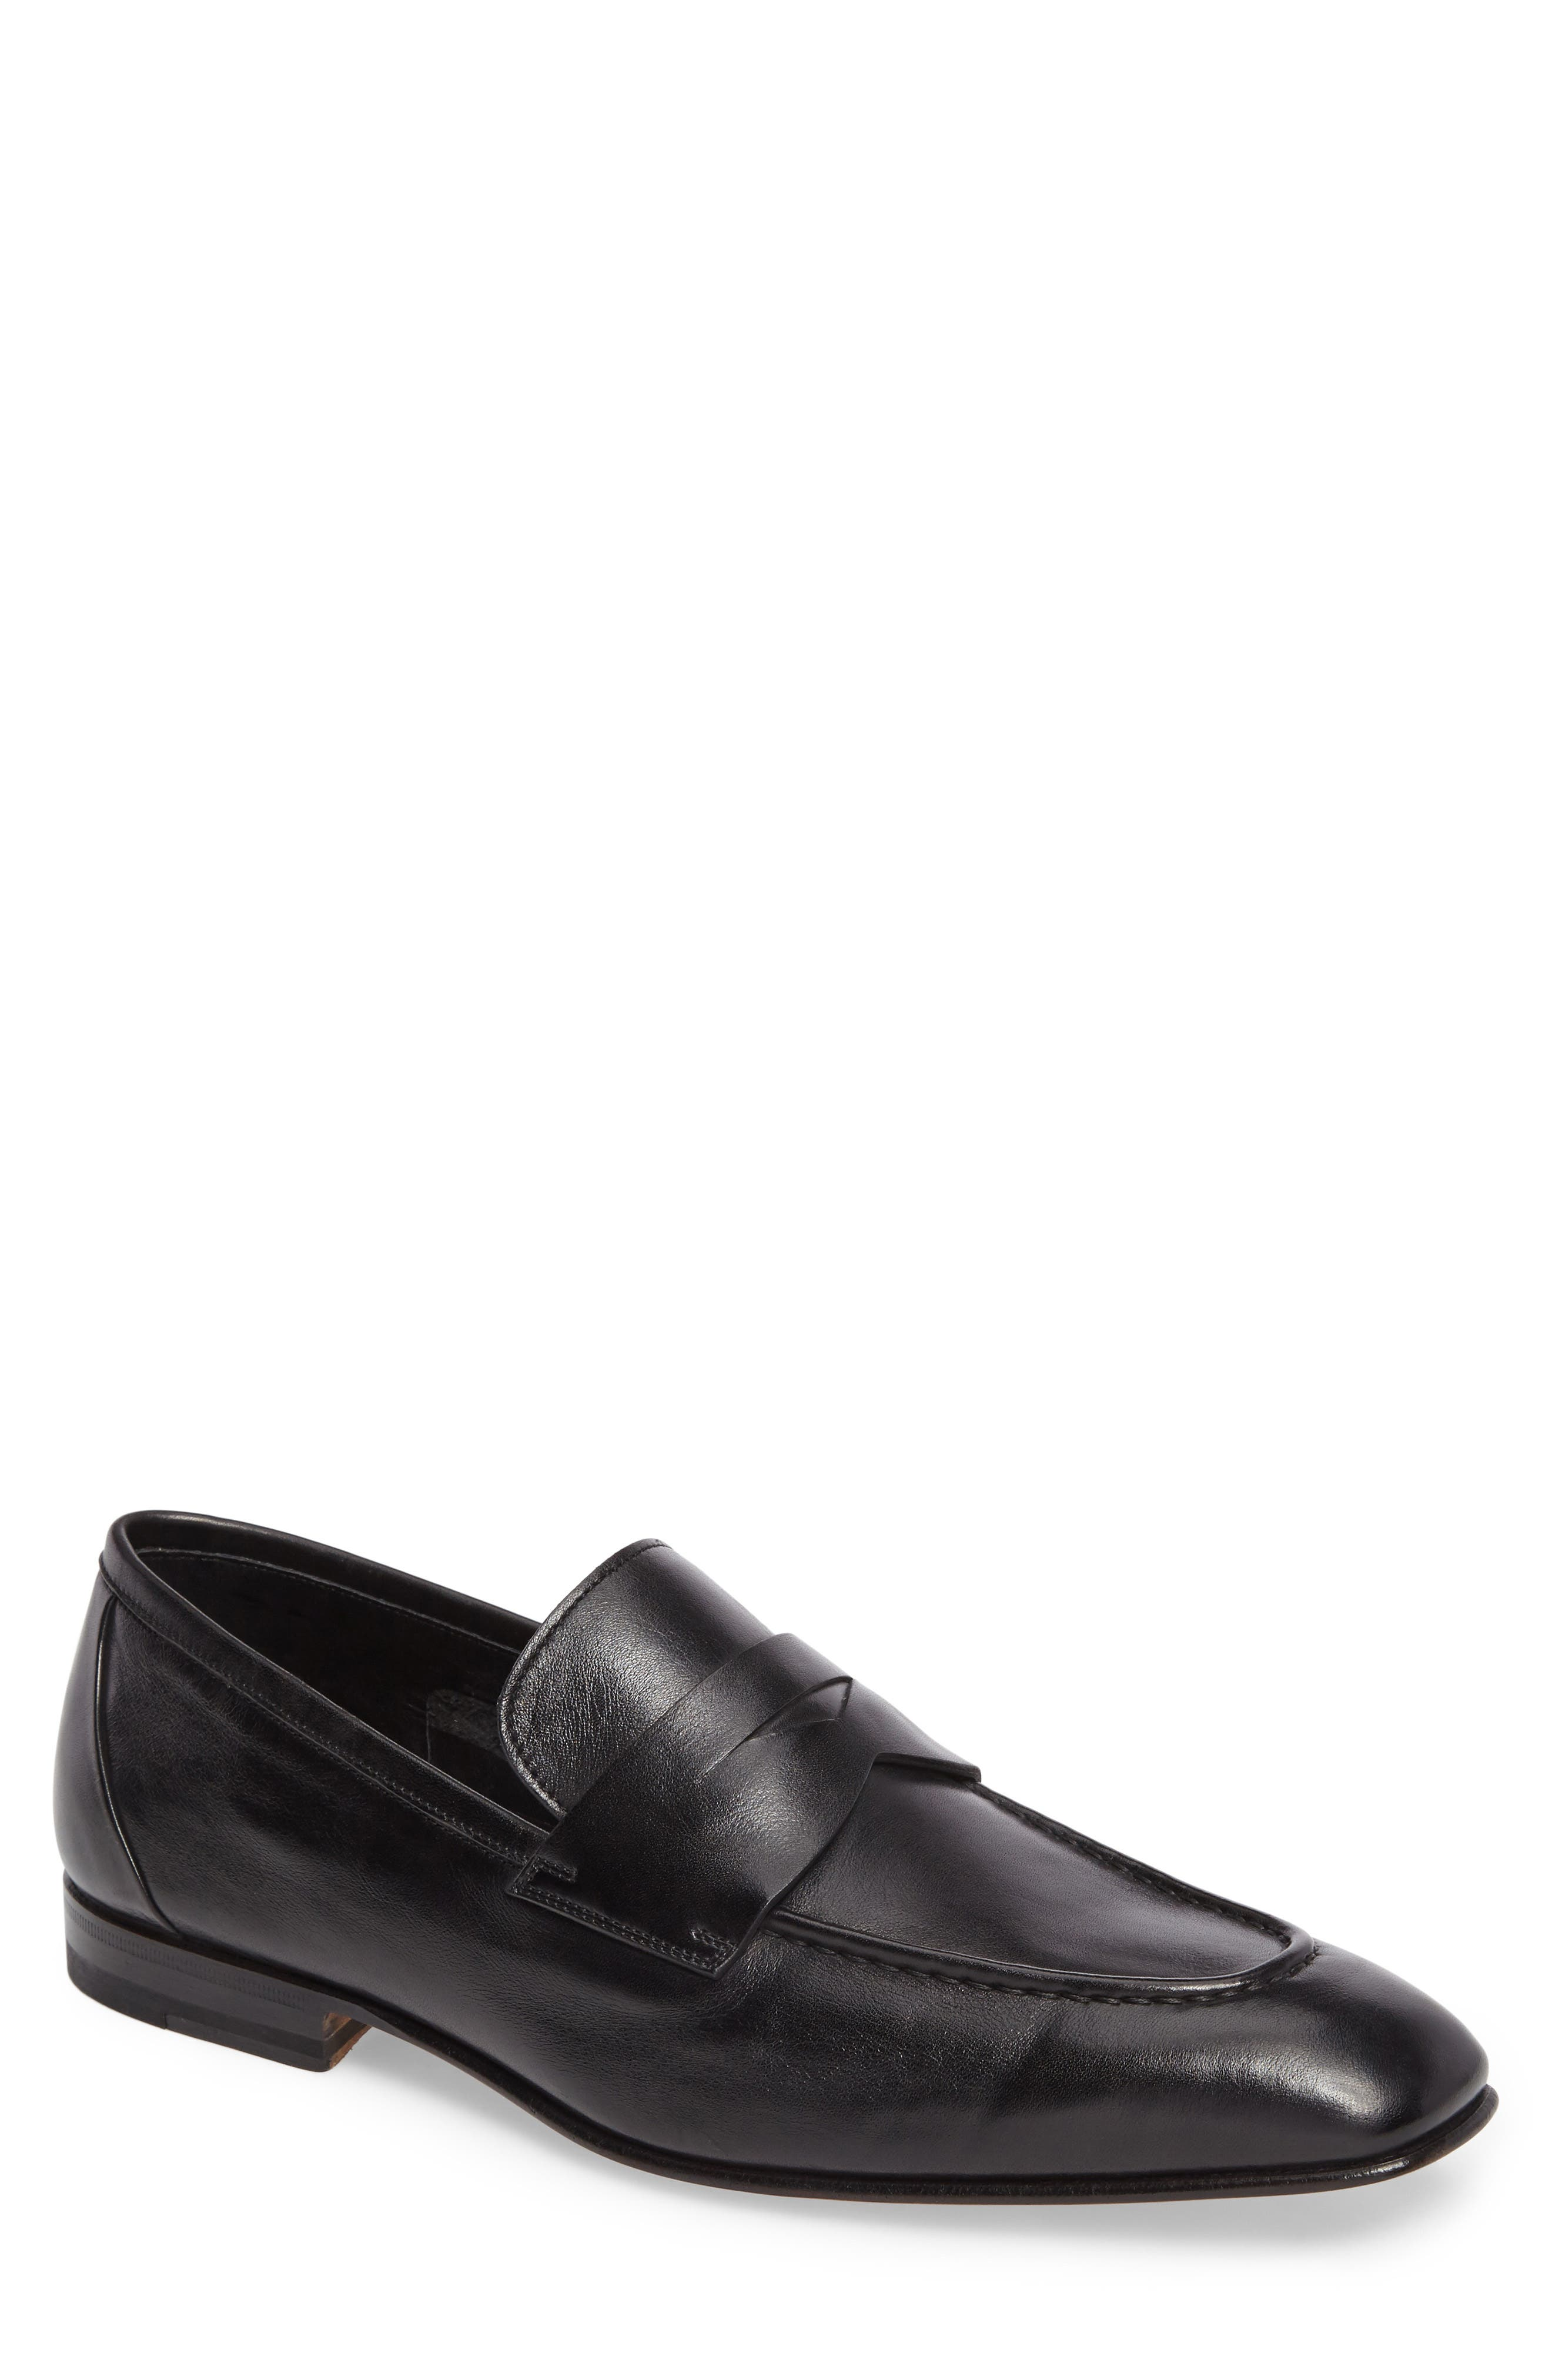 Gannon Penny Loafer,                         Main,                         color, BLACK